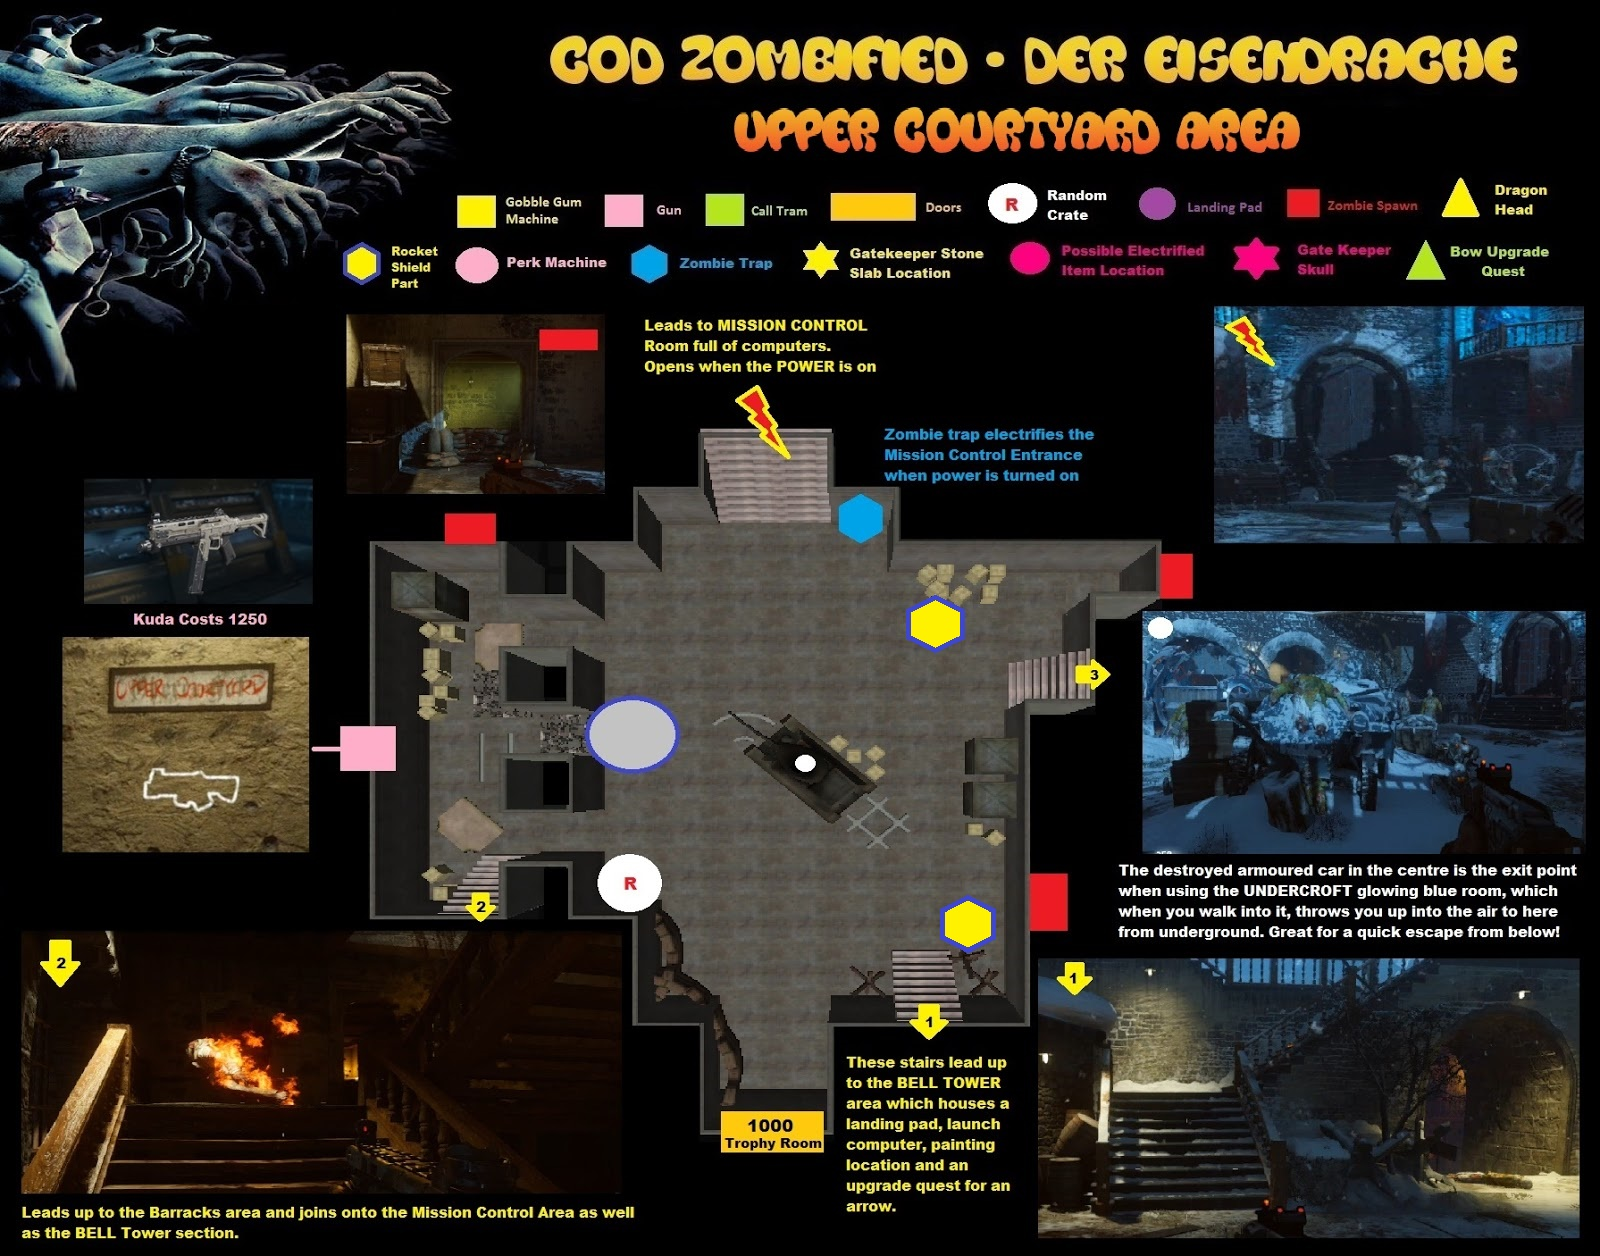 black ops 2 zombies maps unlock with Location Of Parts For Shield Bo3 on Black Ops 2 Die Rise Mahjong Tiles Locations And Puzzle Solution additionally Location Of Parts For Shield Bo3 further How To Unlock Maps On Black Ops 2 additionally Nacht Der Untoten 2015 Remake furthermore Call Of Duty Black Ops Maps Usb.